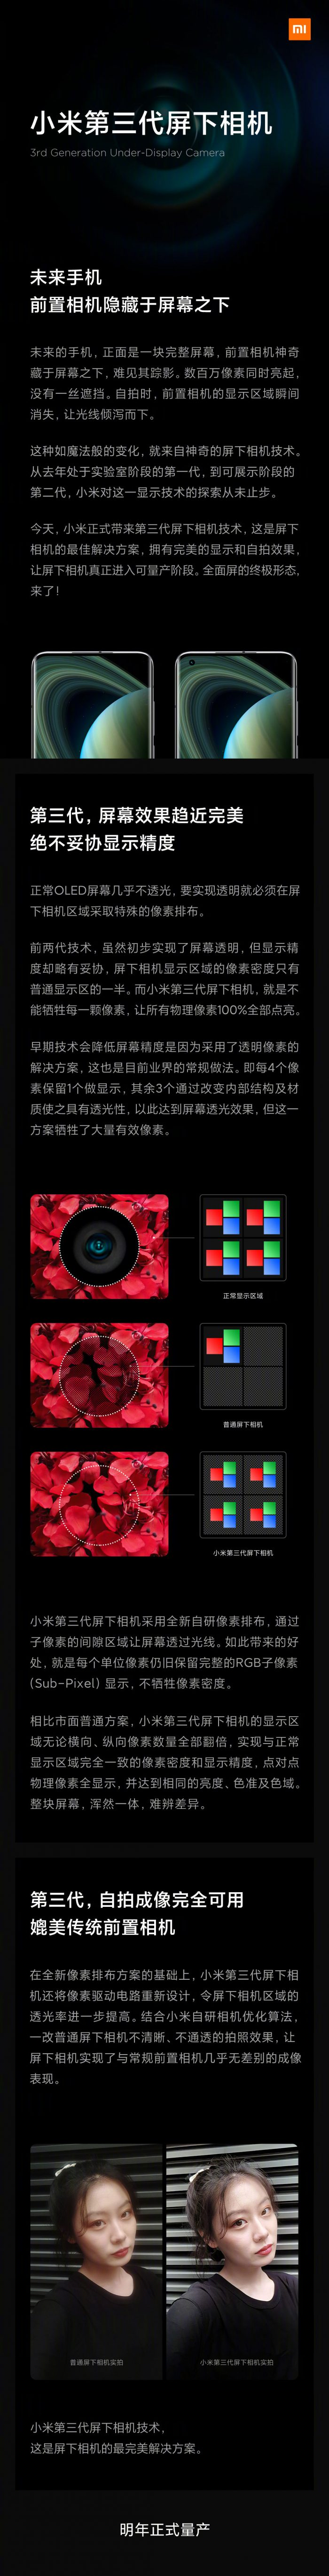 Xiaomi's third-generation under-screen camera technology